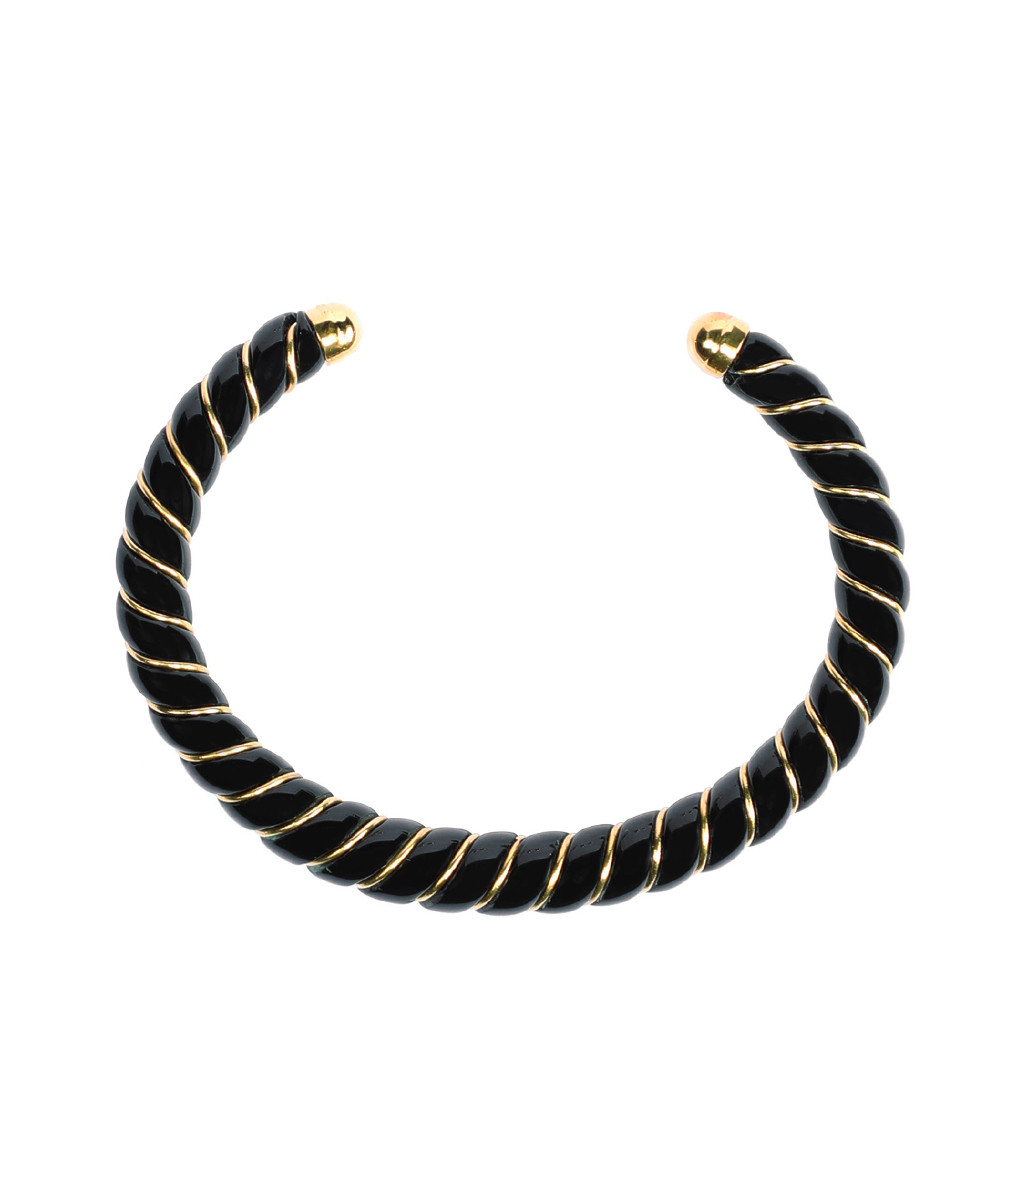 AURELIE BIDERMANN - Bracelet New Diana Noir, Exclusivité Lulli